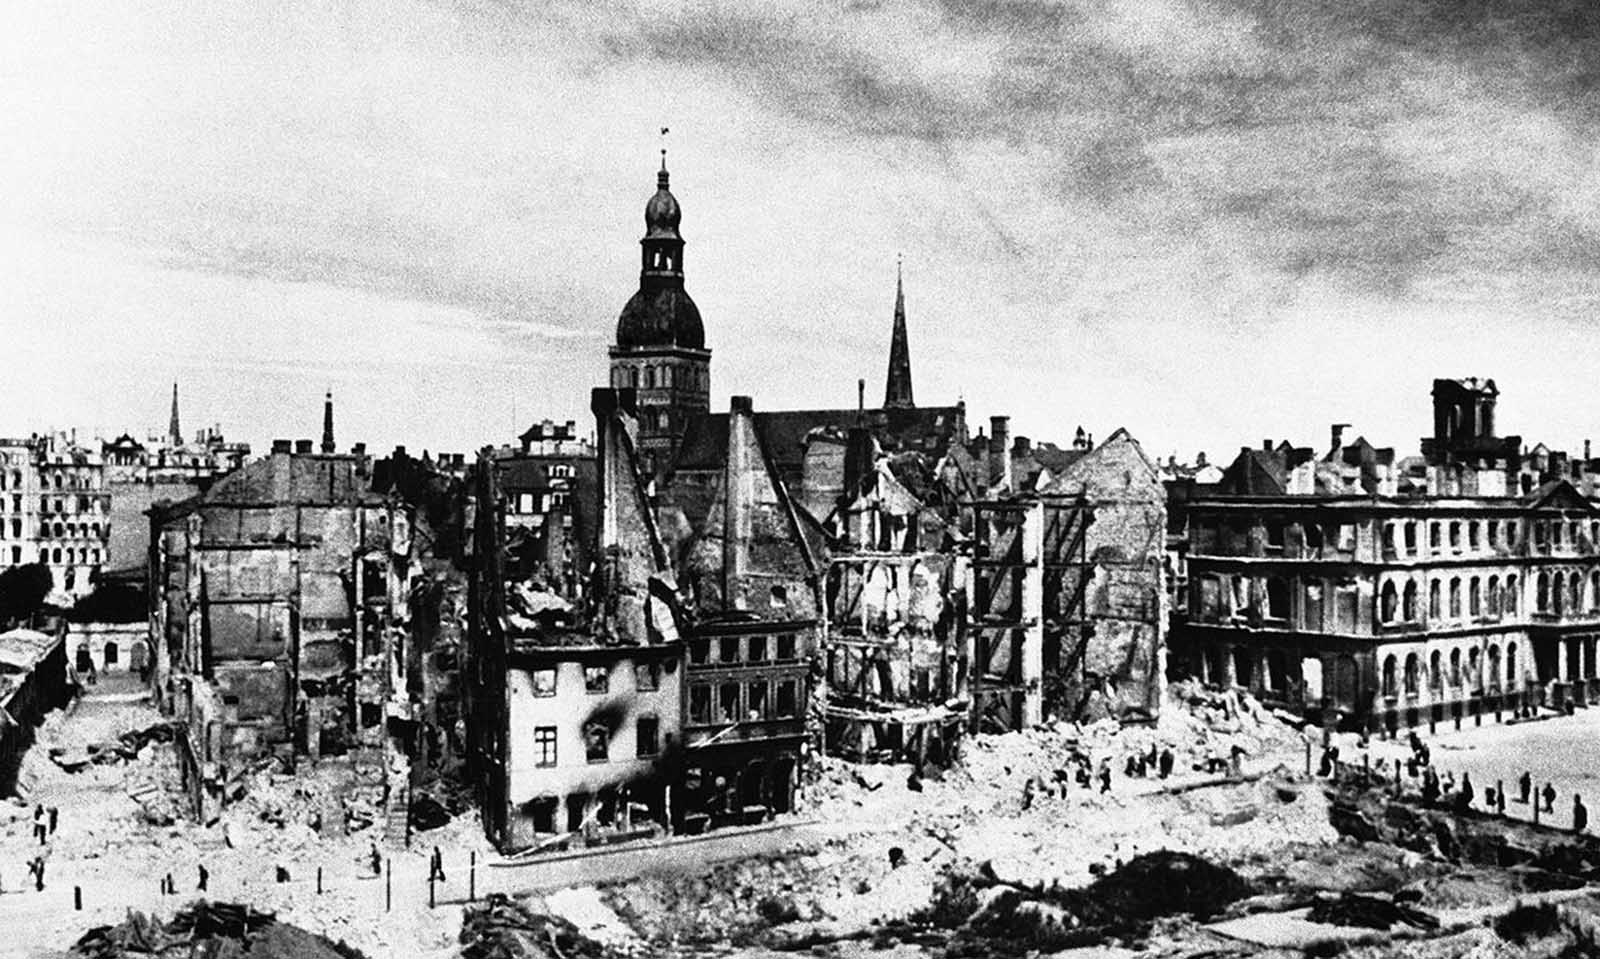 A view of the destruction in Riga, the capital of Latvia, on October 3, 1941, after the wave of war had passed over it, the Russians had withdrawn and it was in Nazi hands.